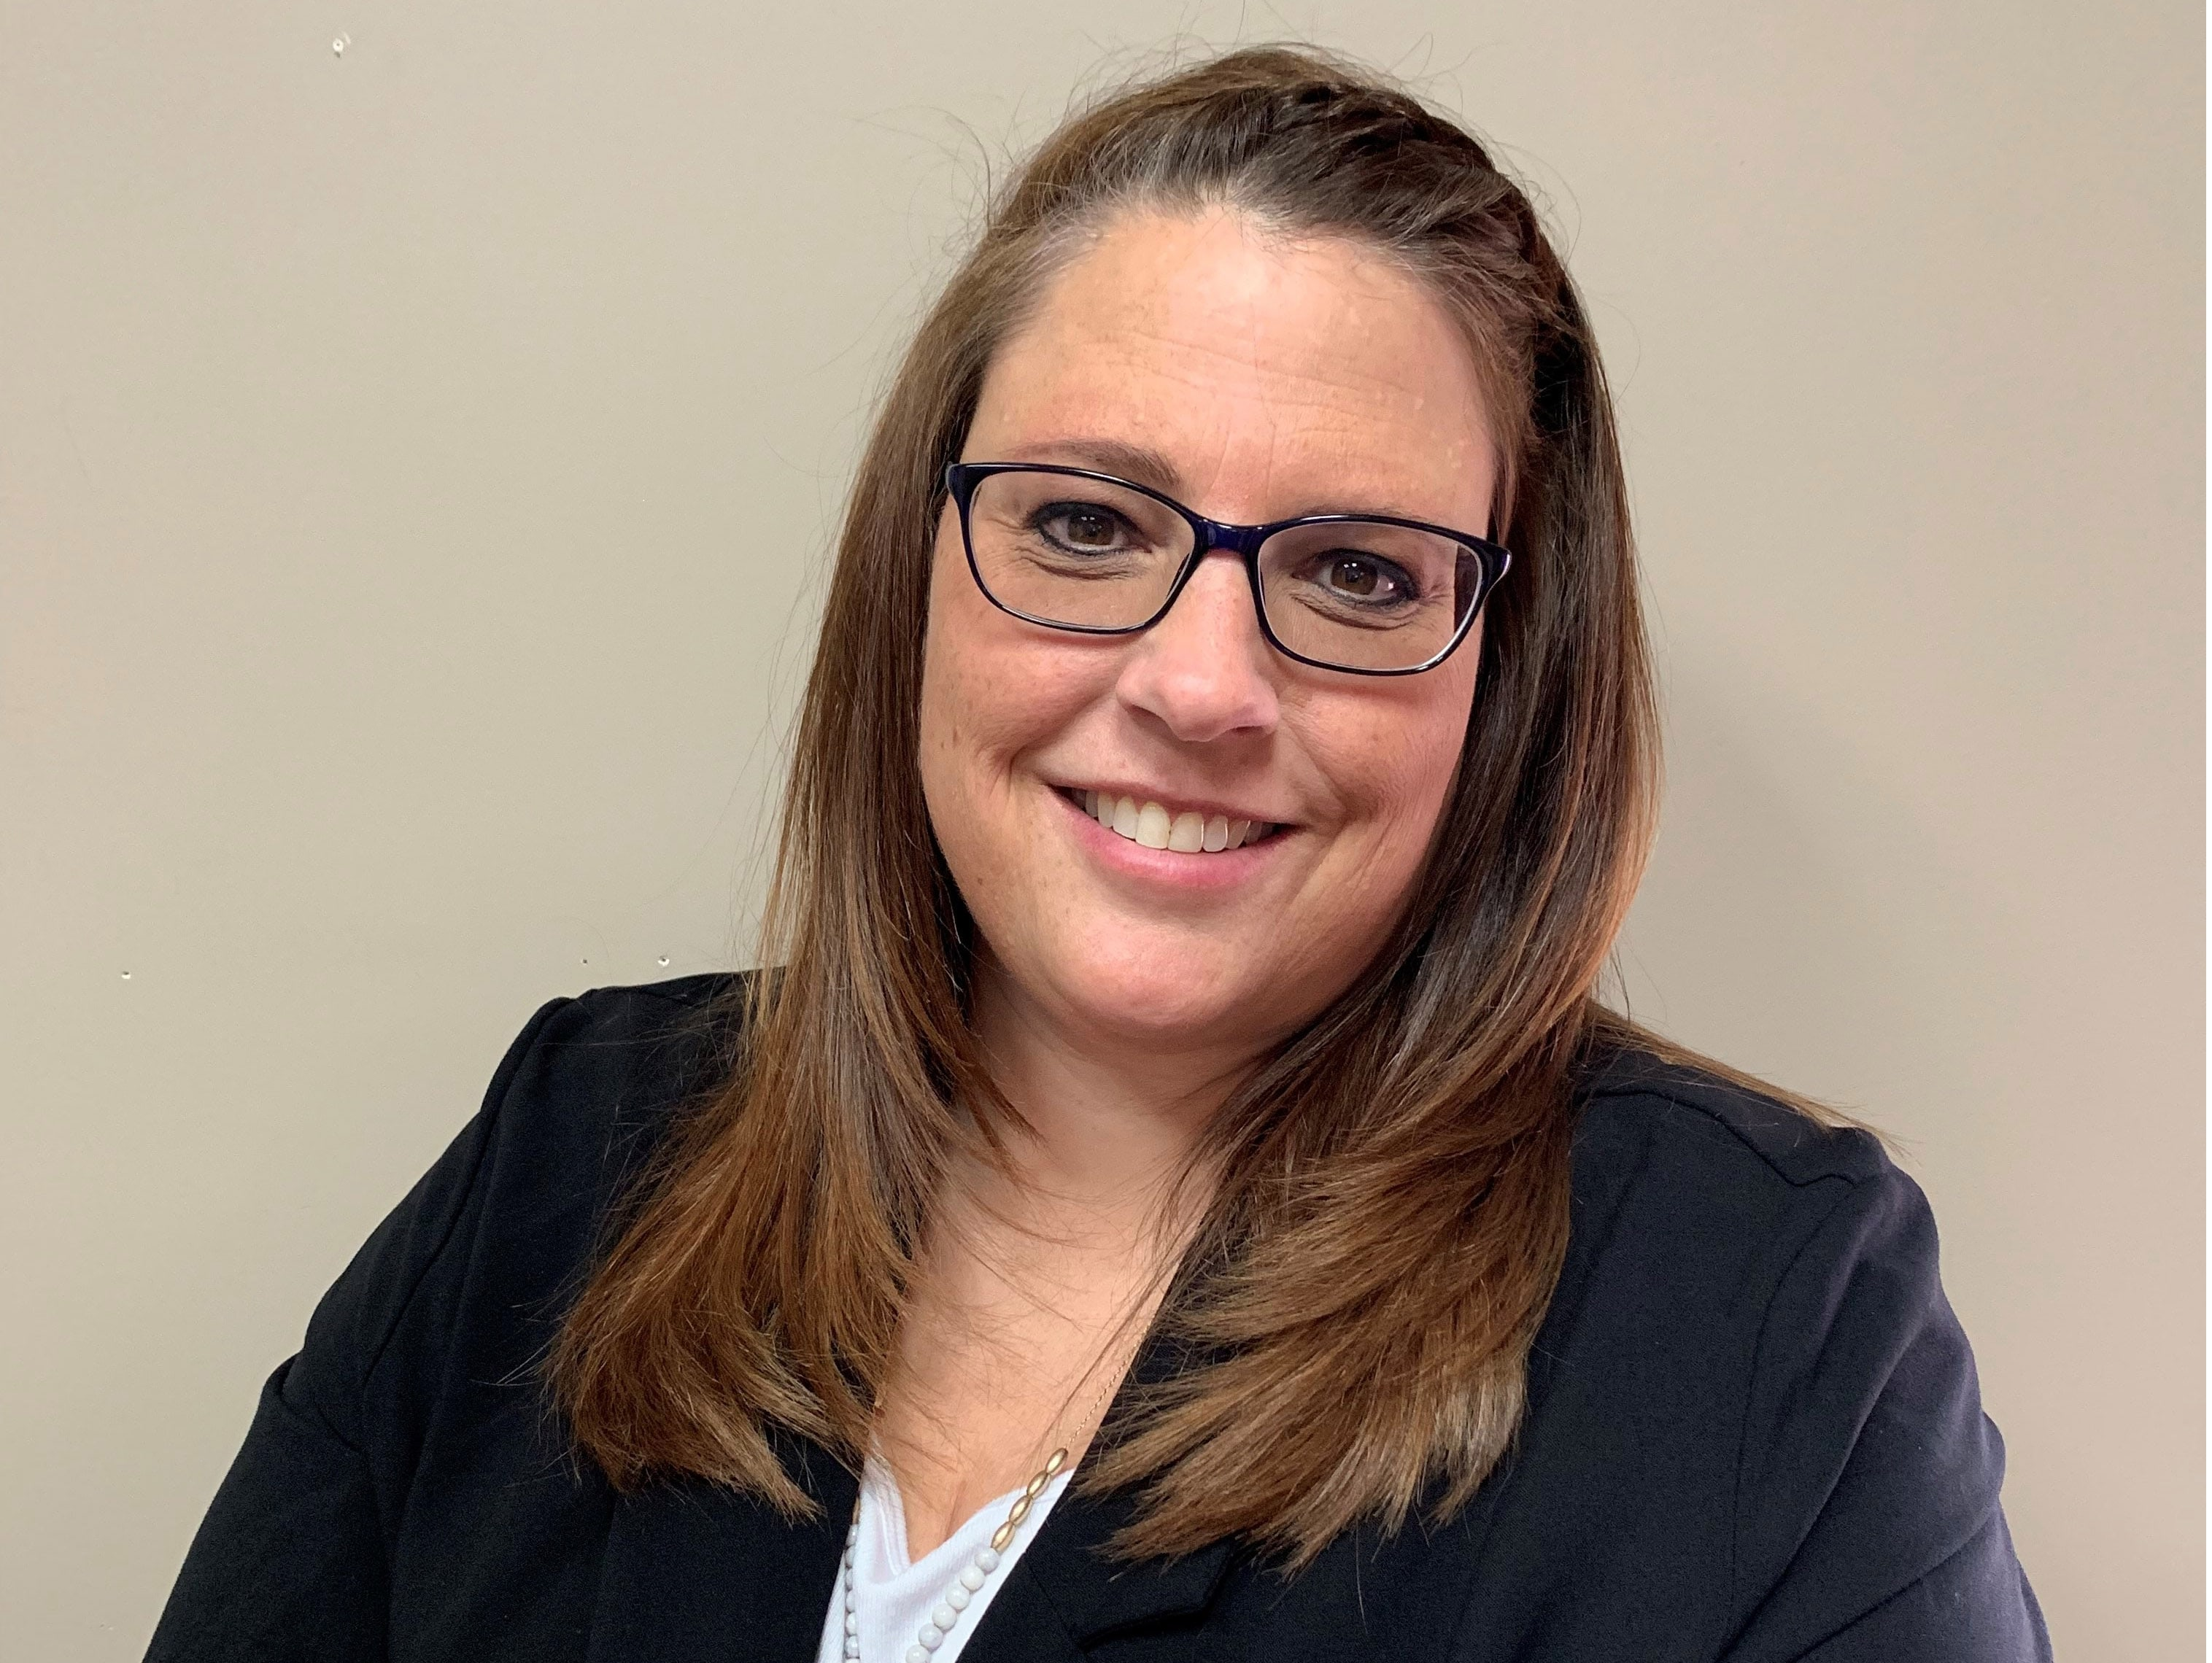 Karen Holman is the branch manager for Western Financial Group's Vernon and Chase brokerages